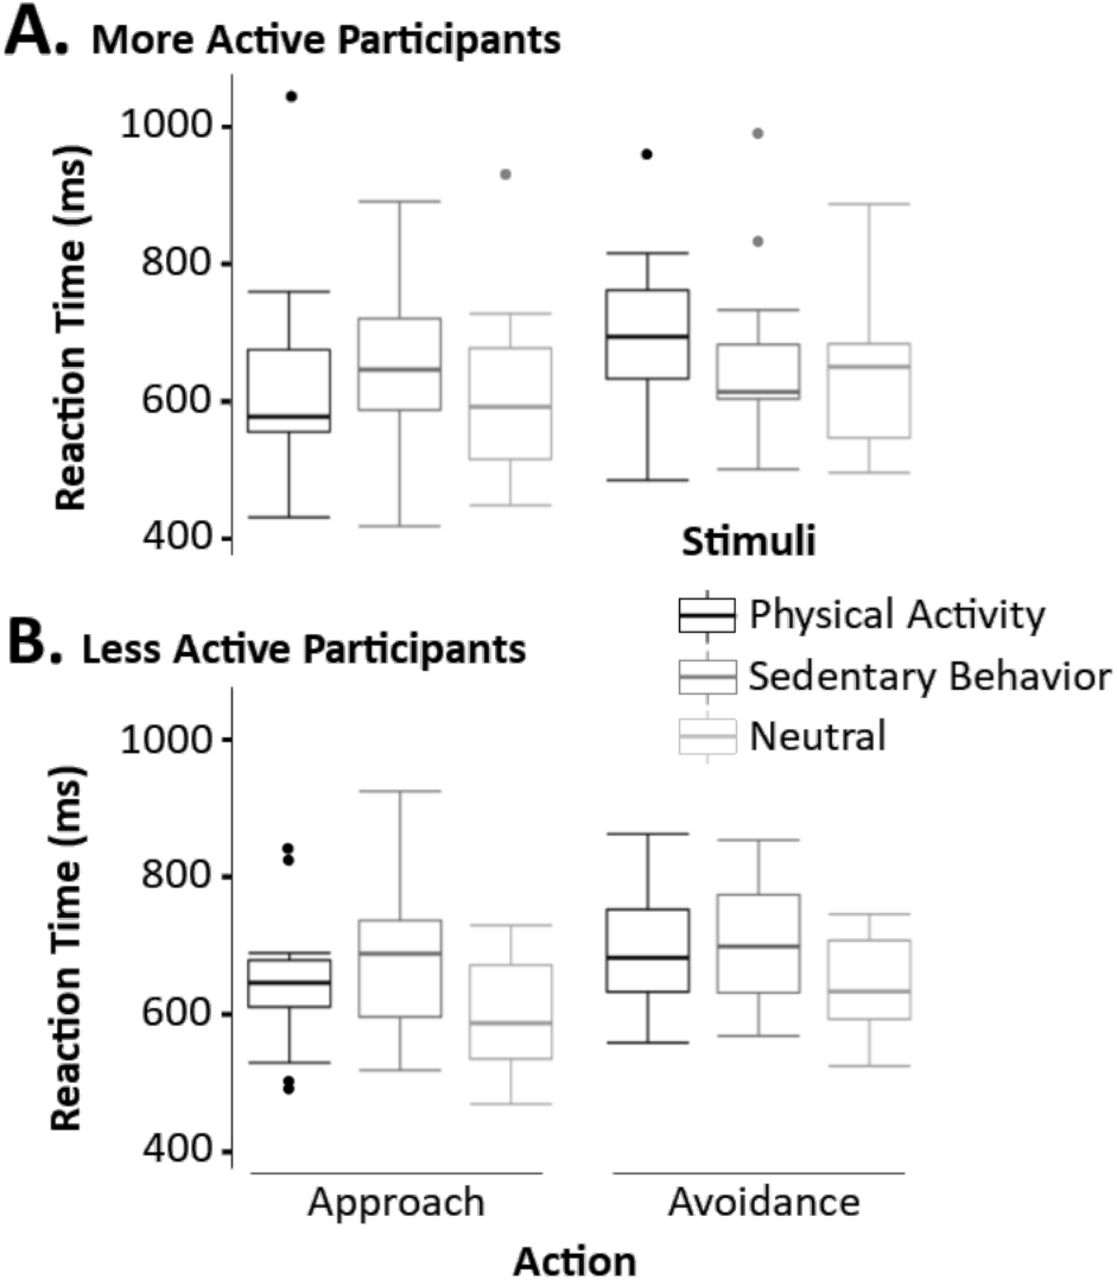 Avoiding sedentary behaviors requires more cortical